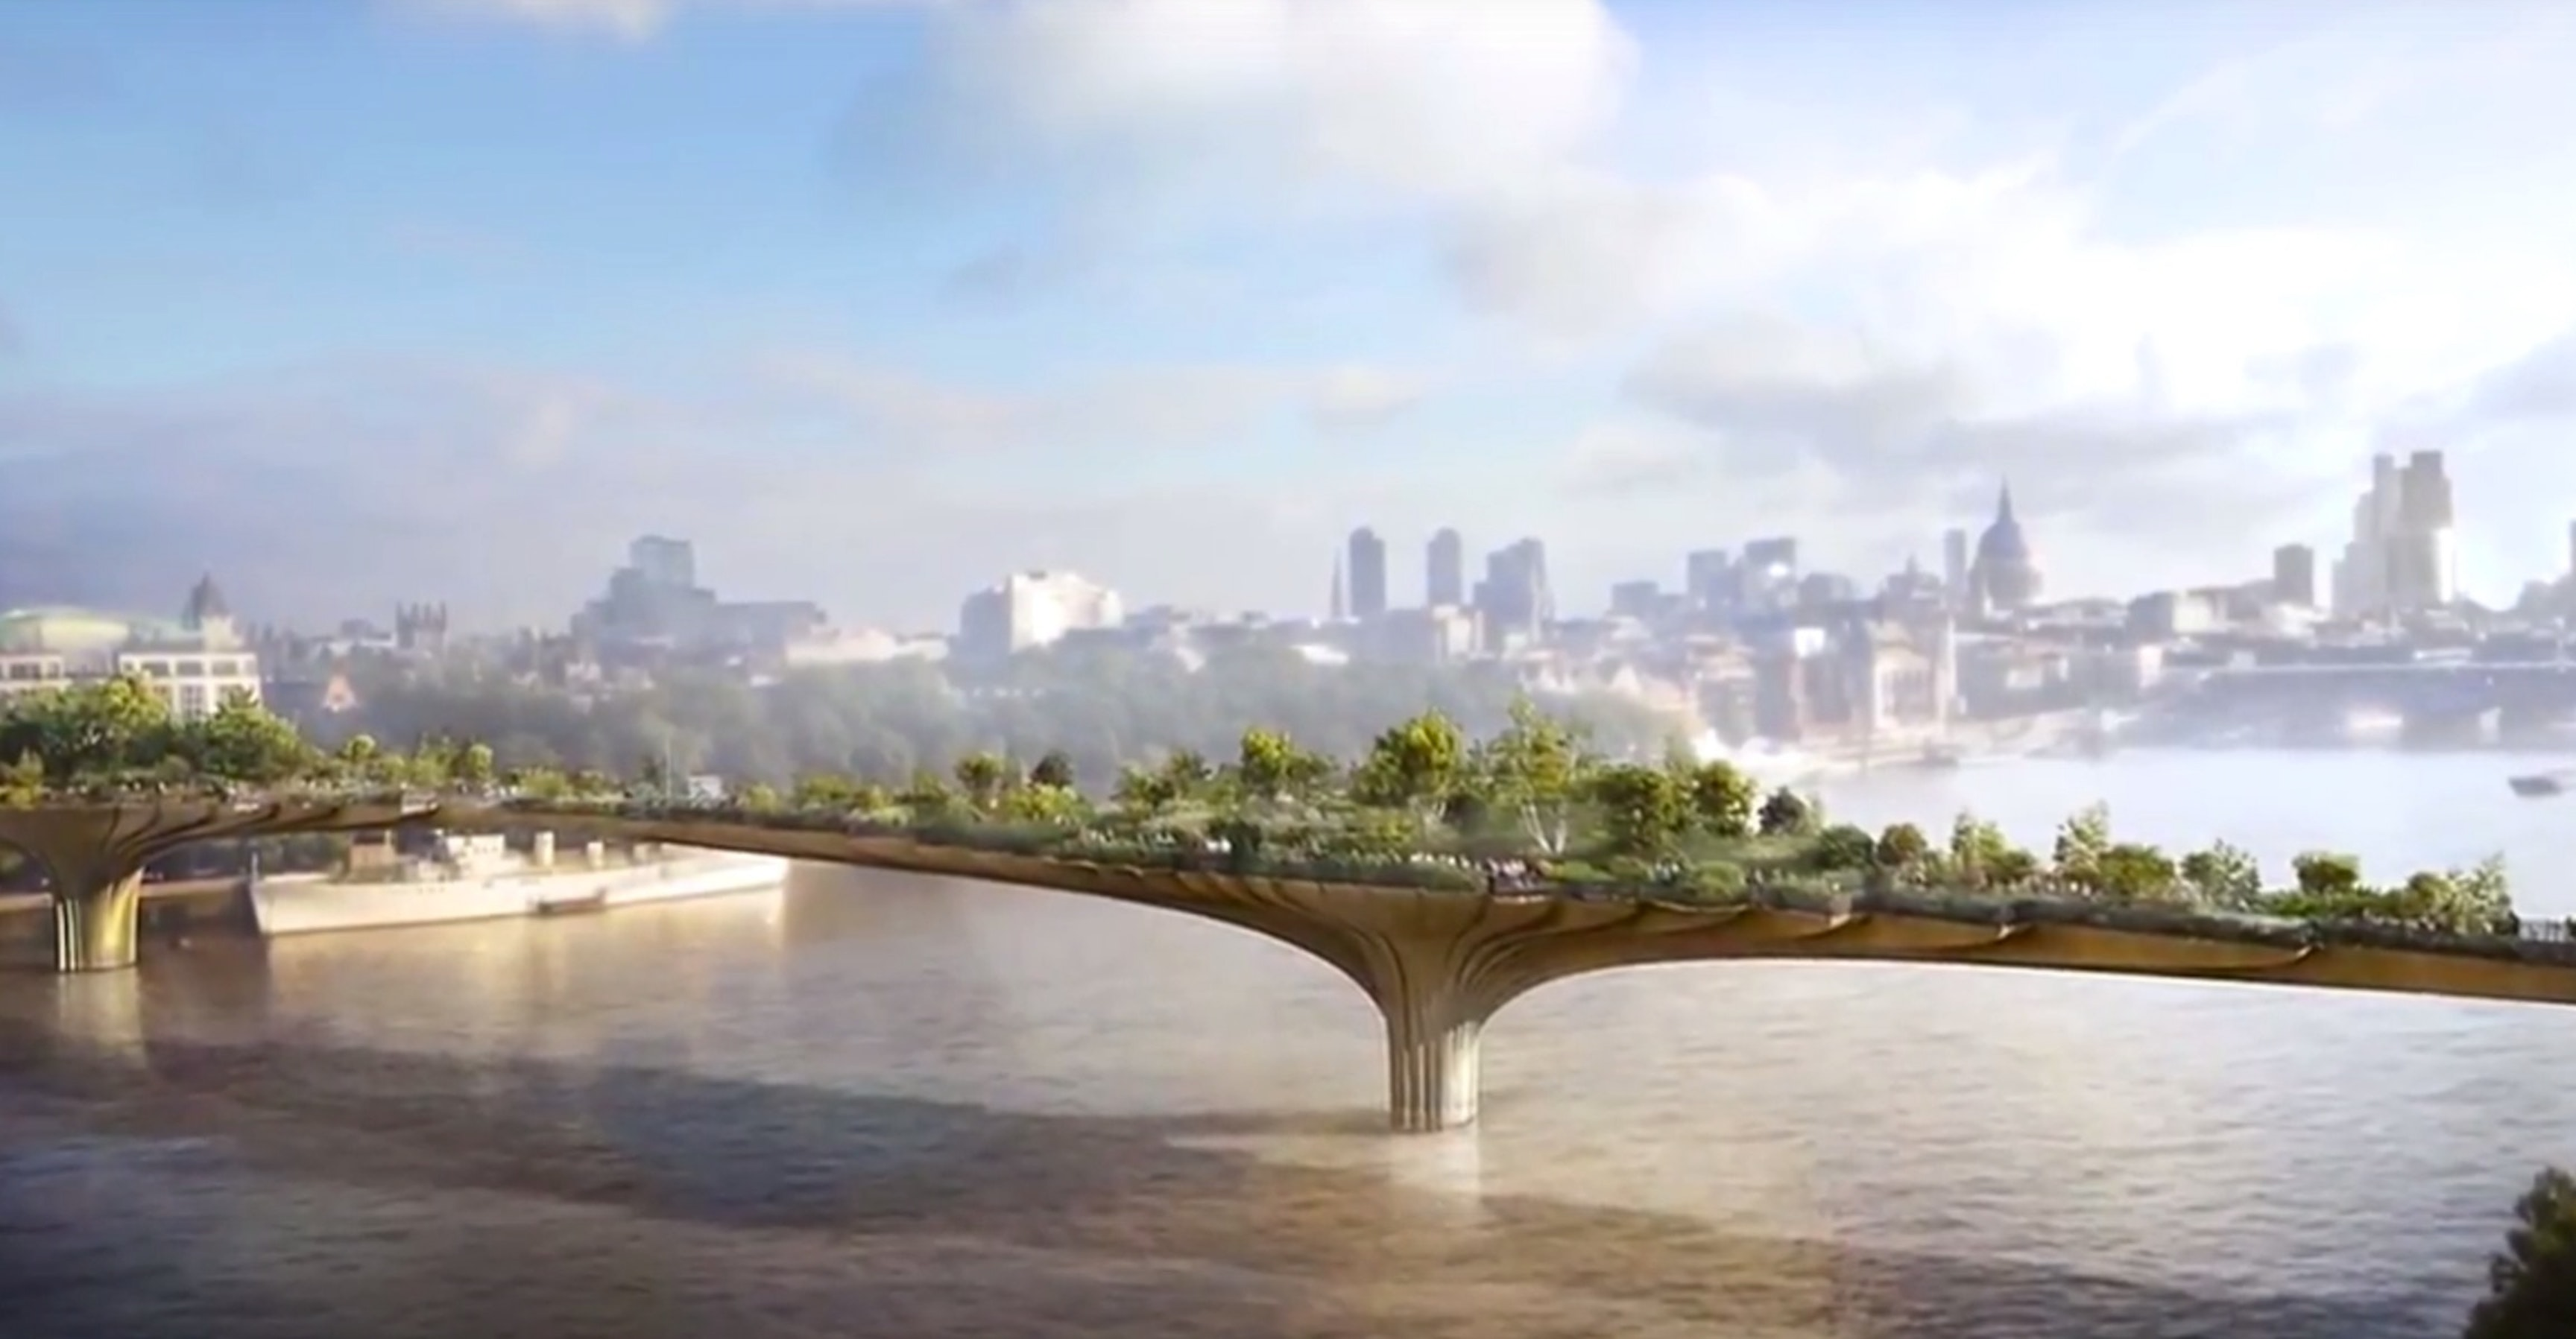 An artist's rendering of the London Garden Bridge